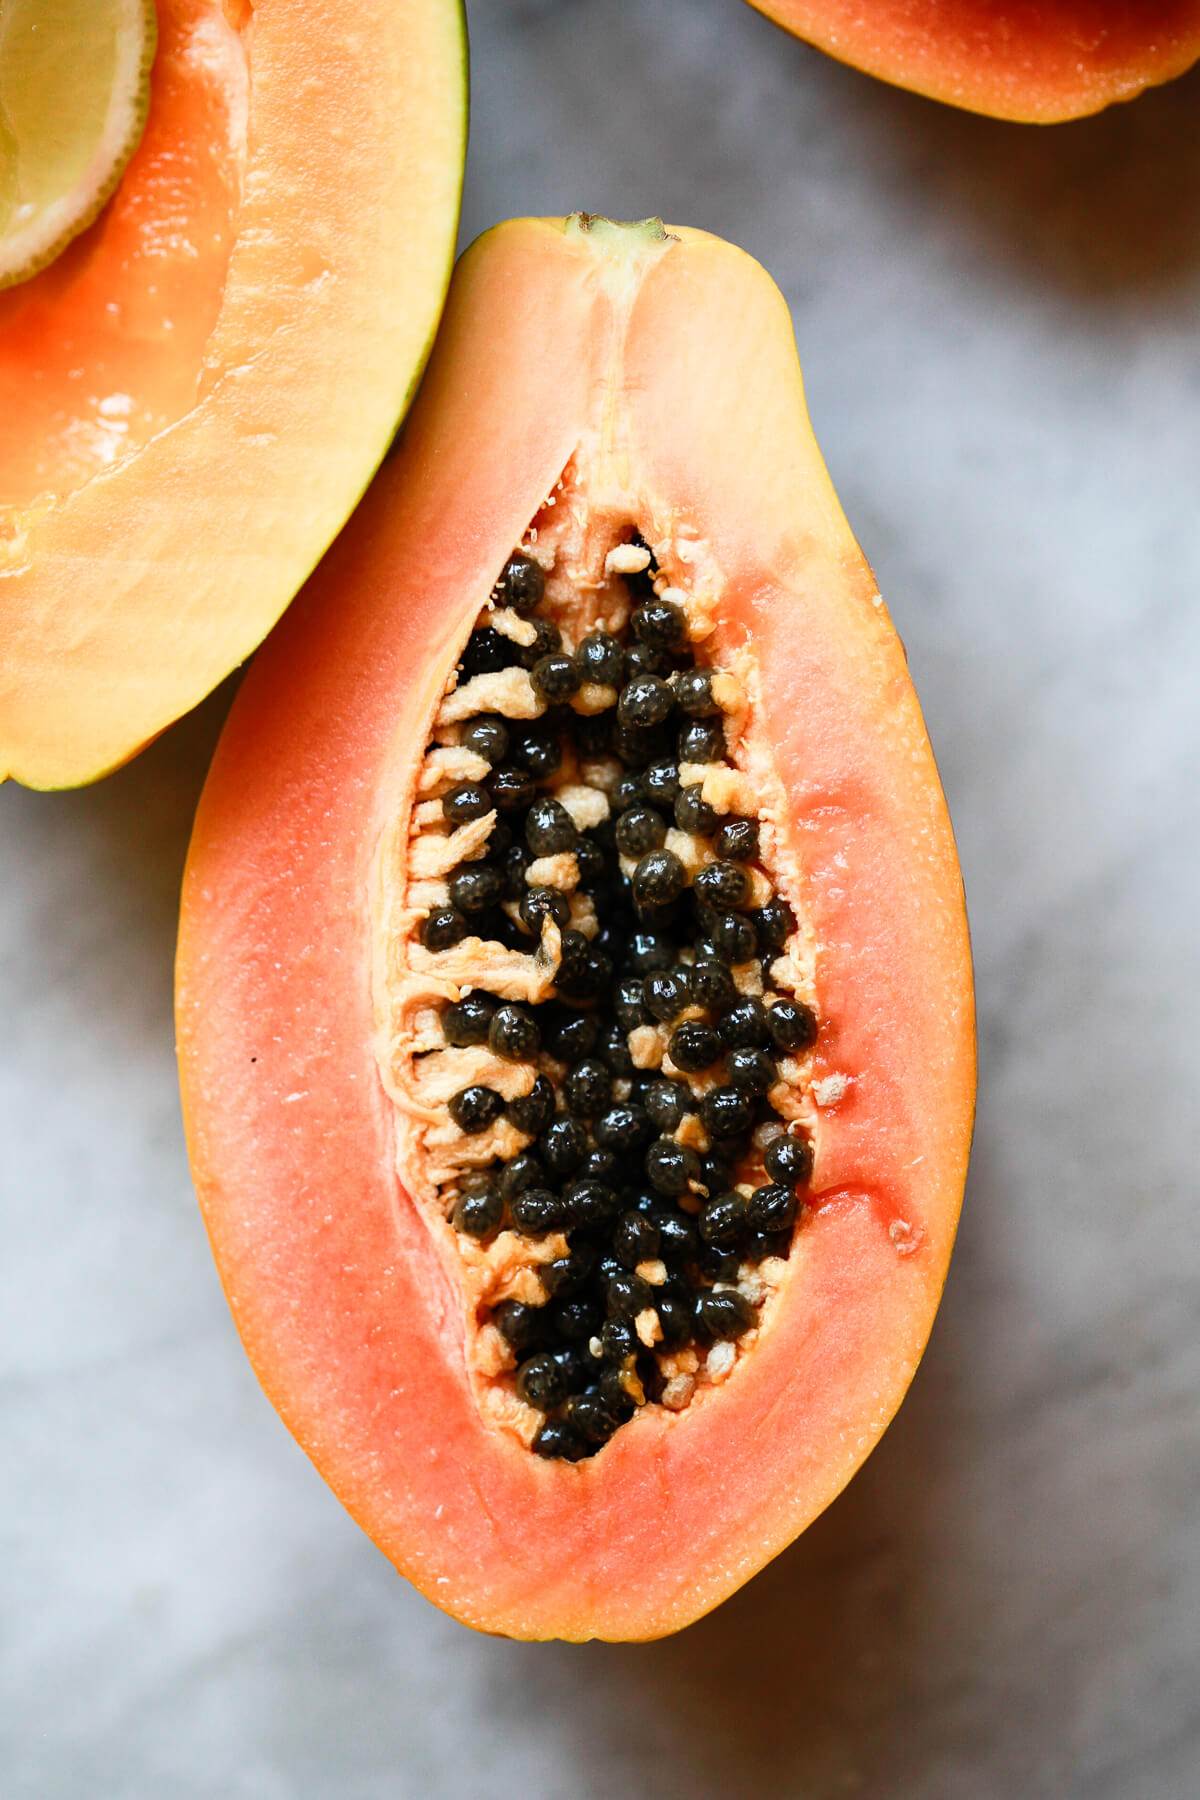 Half a papaya with seeds sits on a marble countertop.